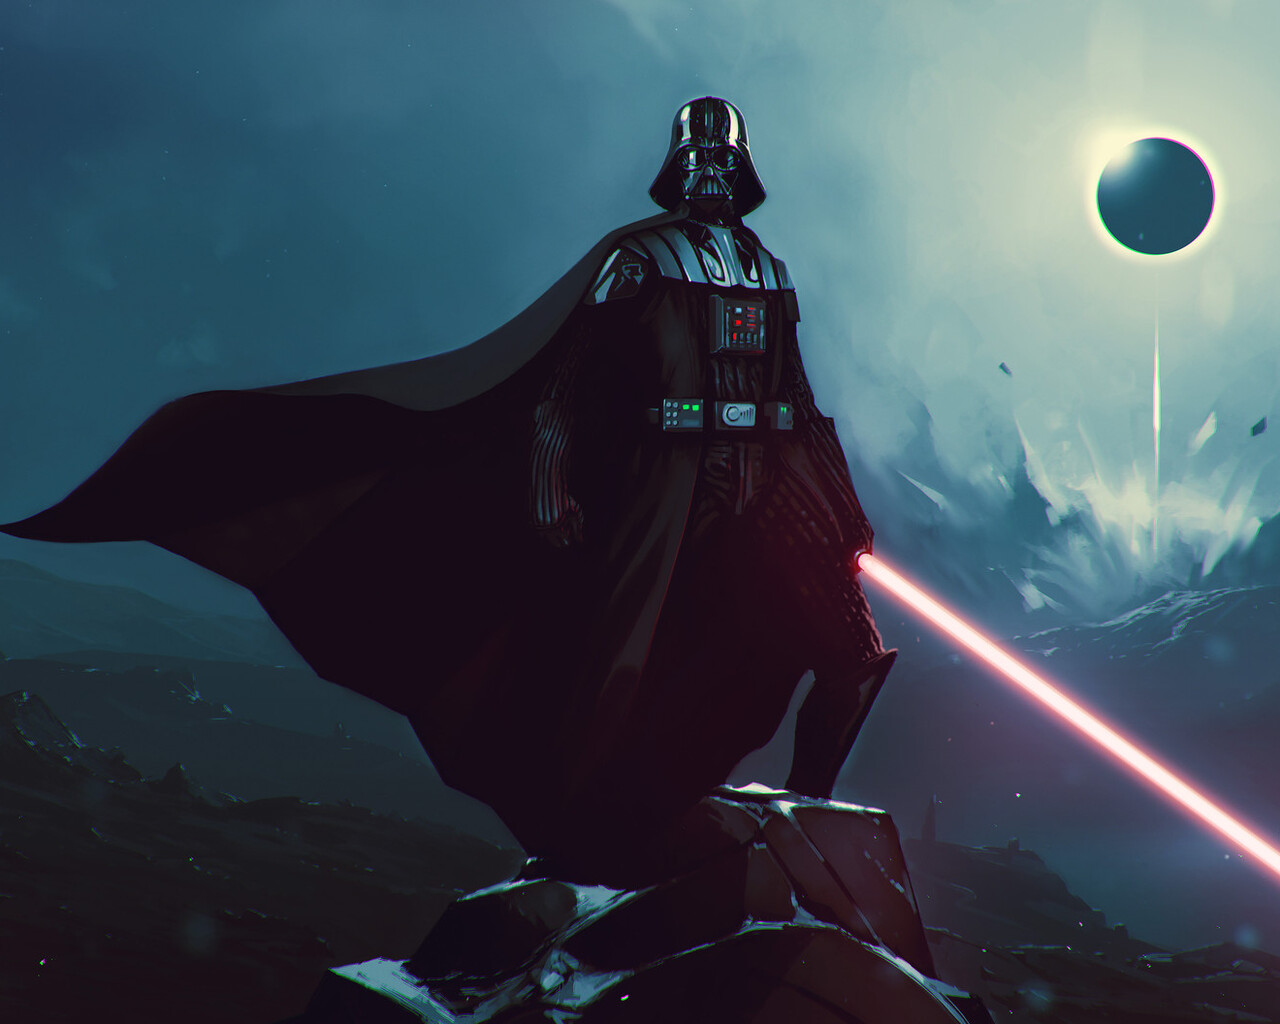 1280x1024 darth vader best artwork 1280x1024 resolution hd 4k